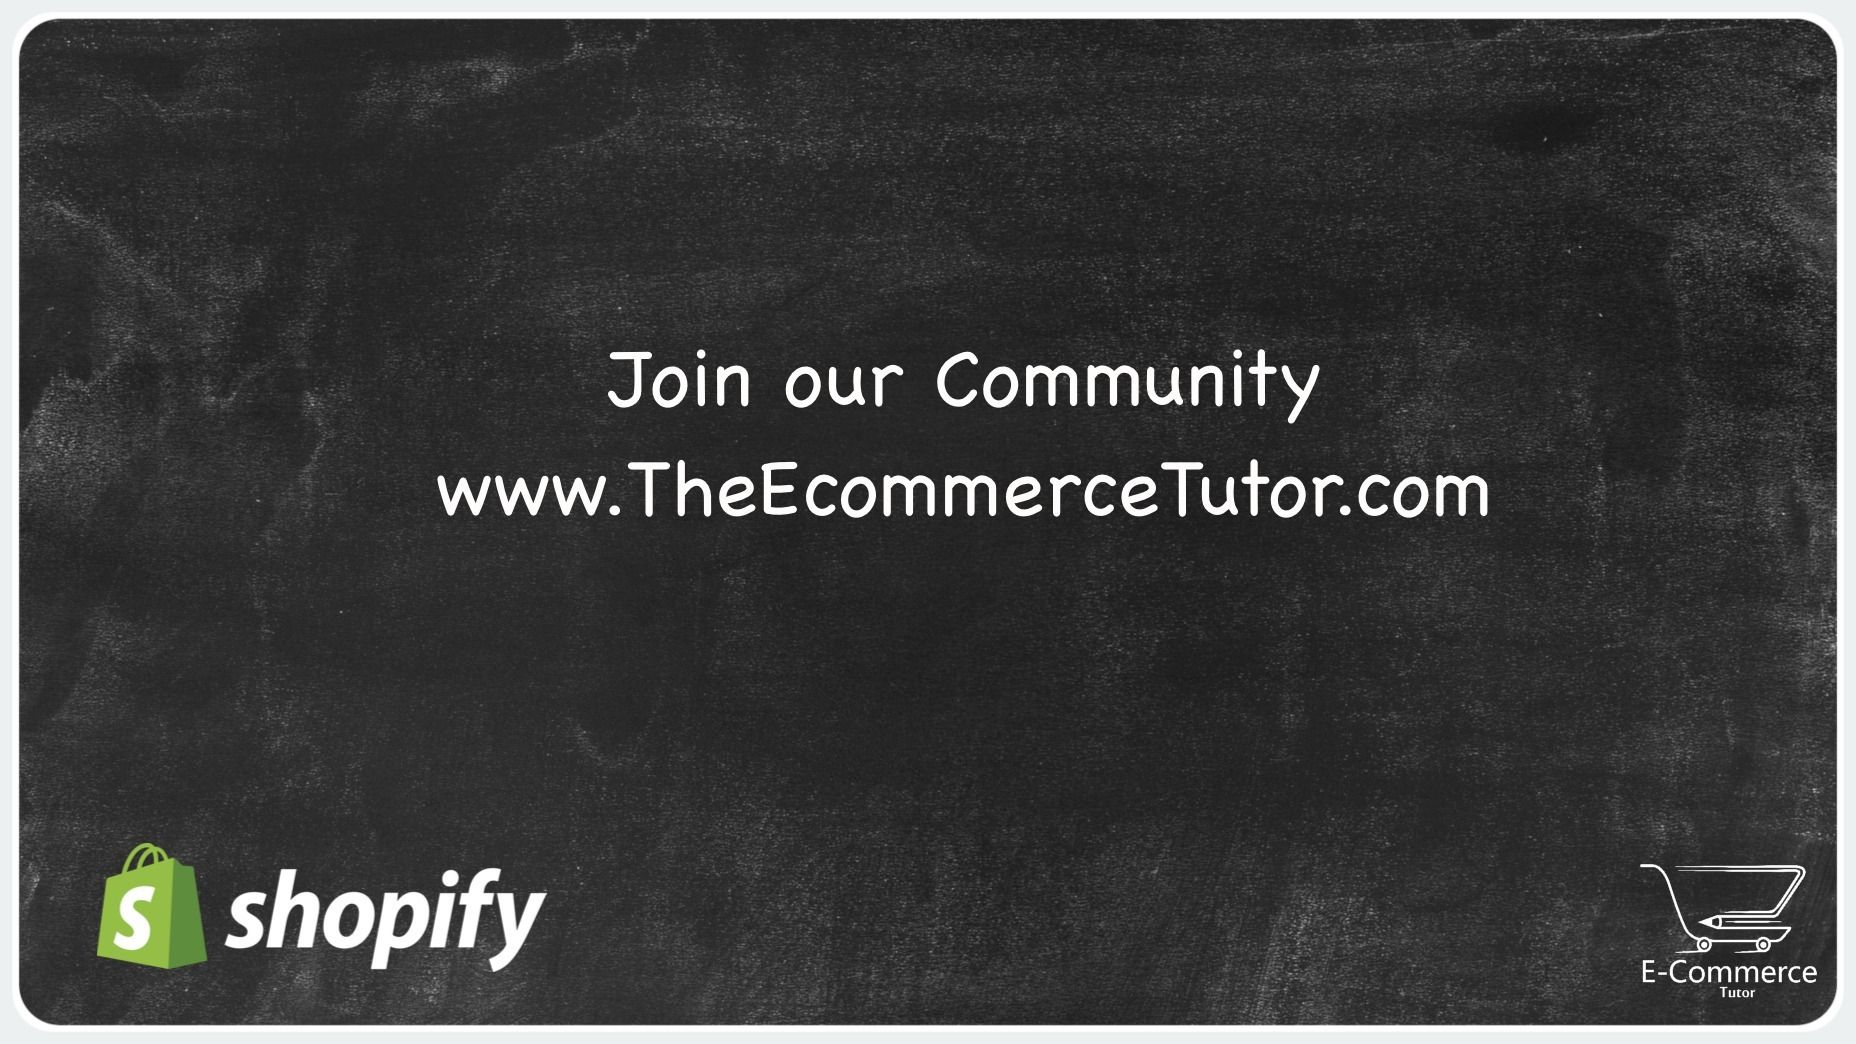 Building an E-Commerce Business with Shopify